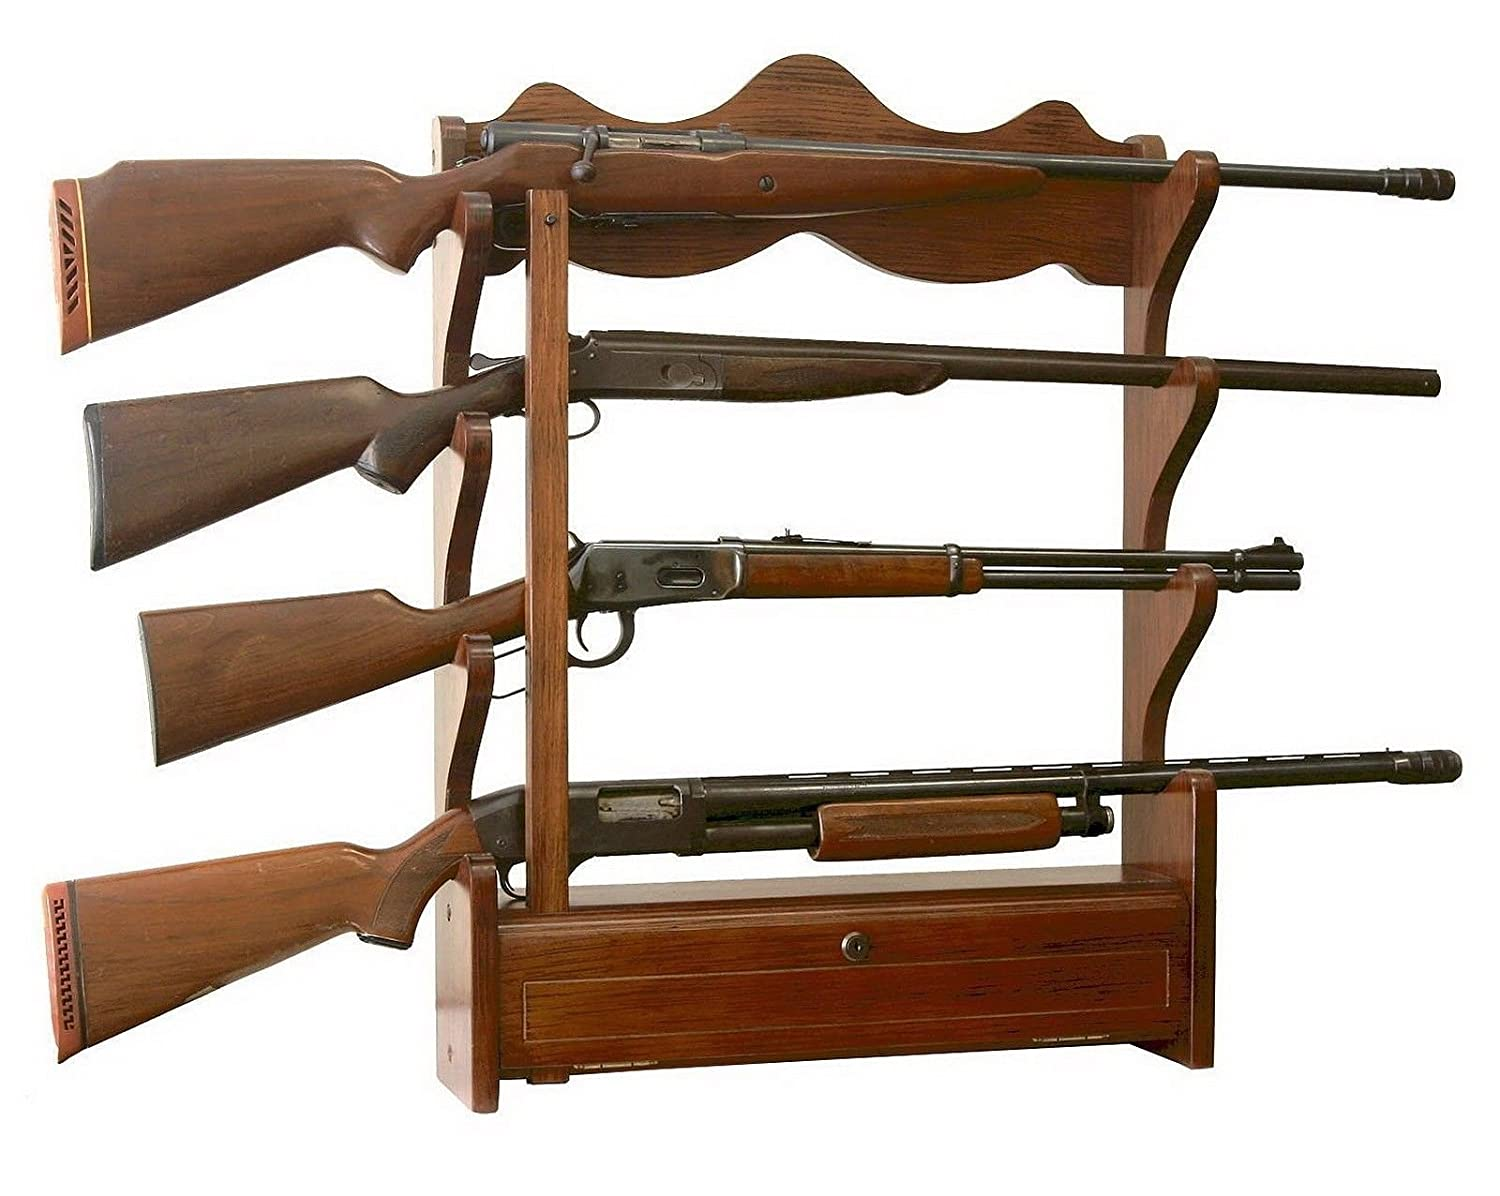 Amazoncom NEW Wooden Wall MountHung Gun Storage Display Rack